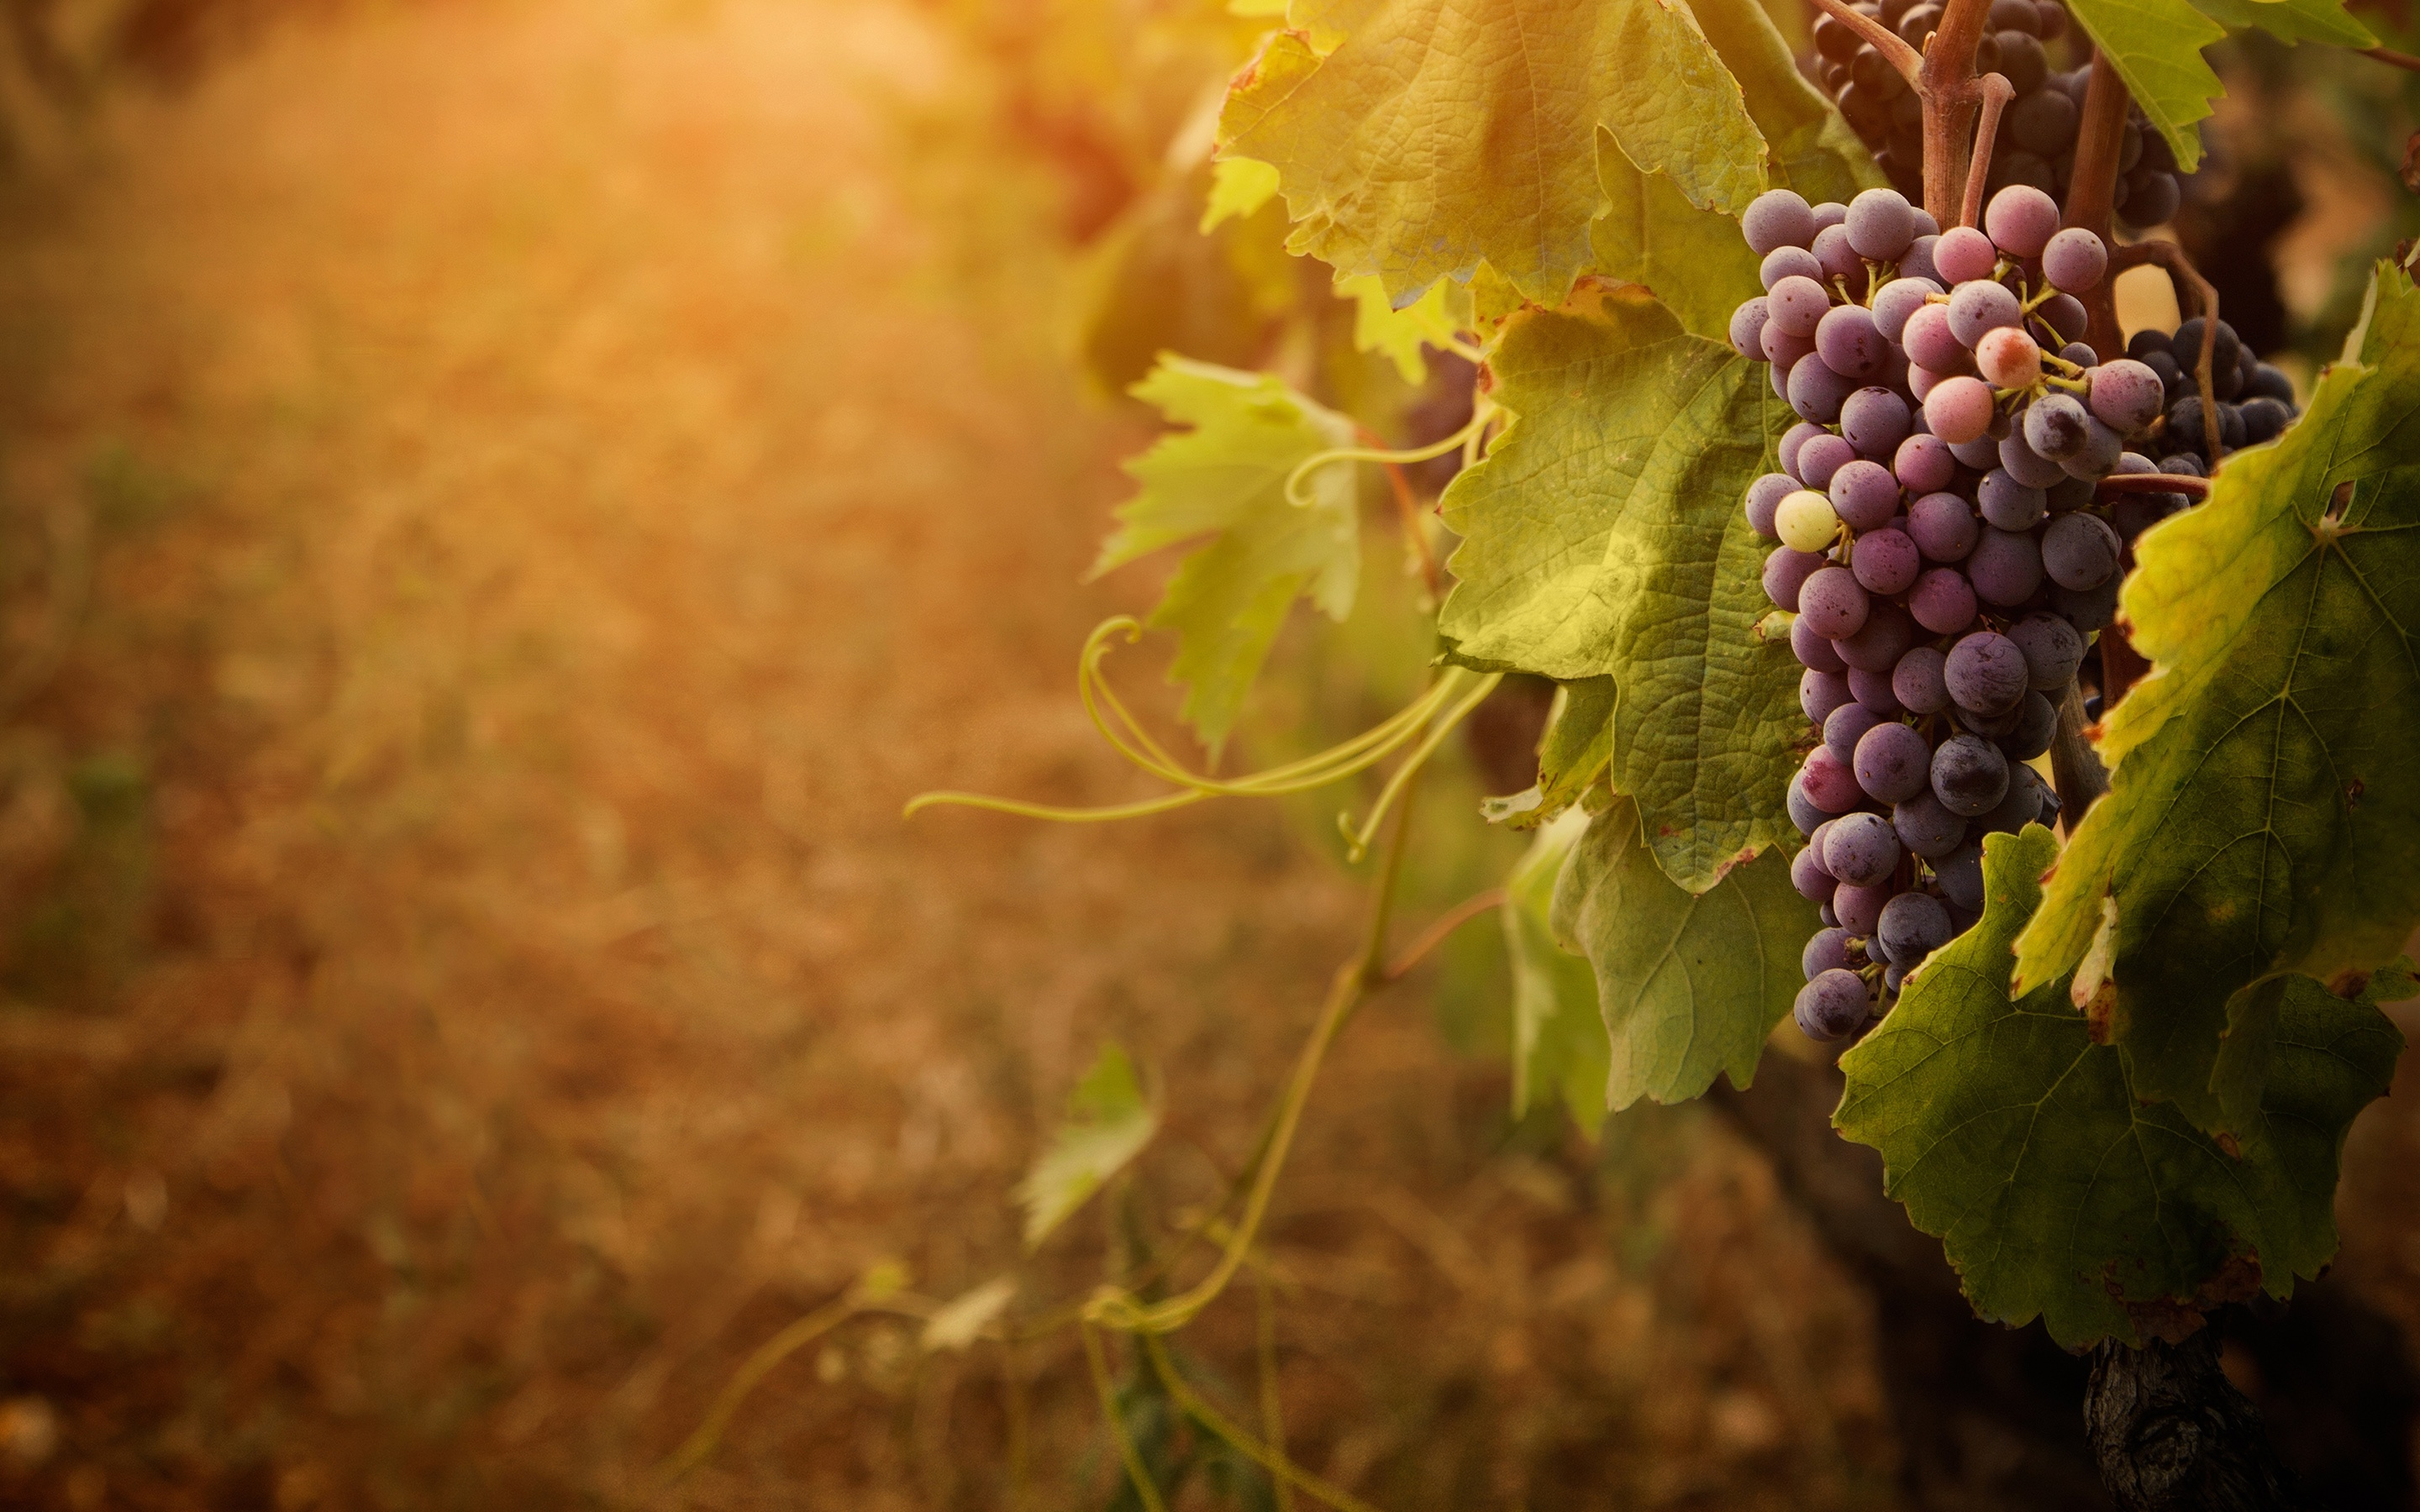 Sweet Grape Wallpaper 2560x1440px 901847 2880x1800